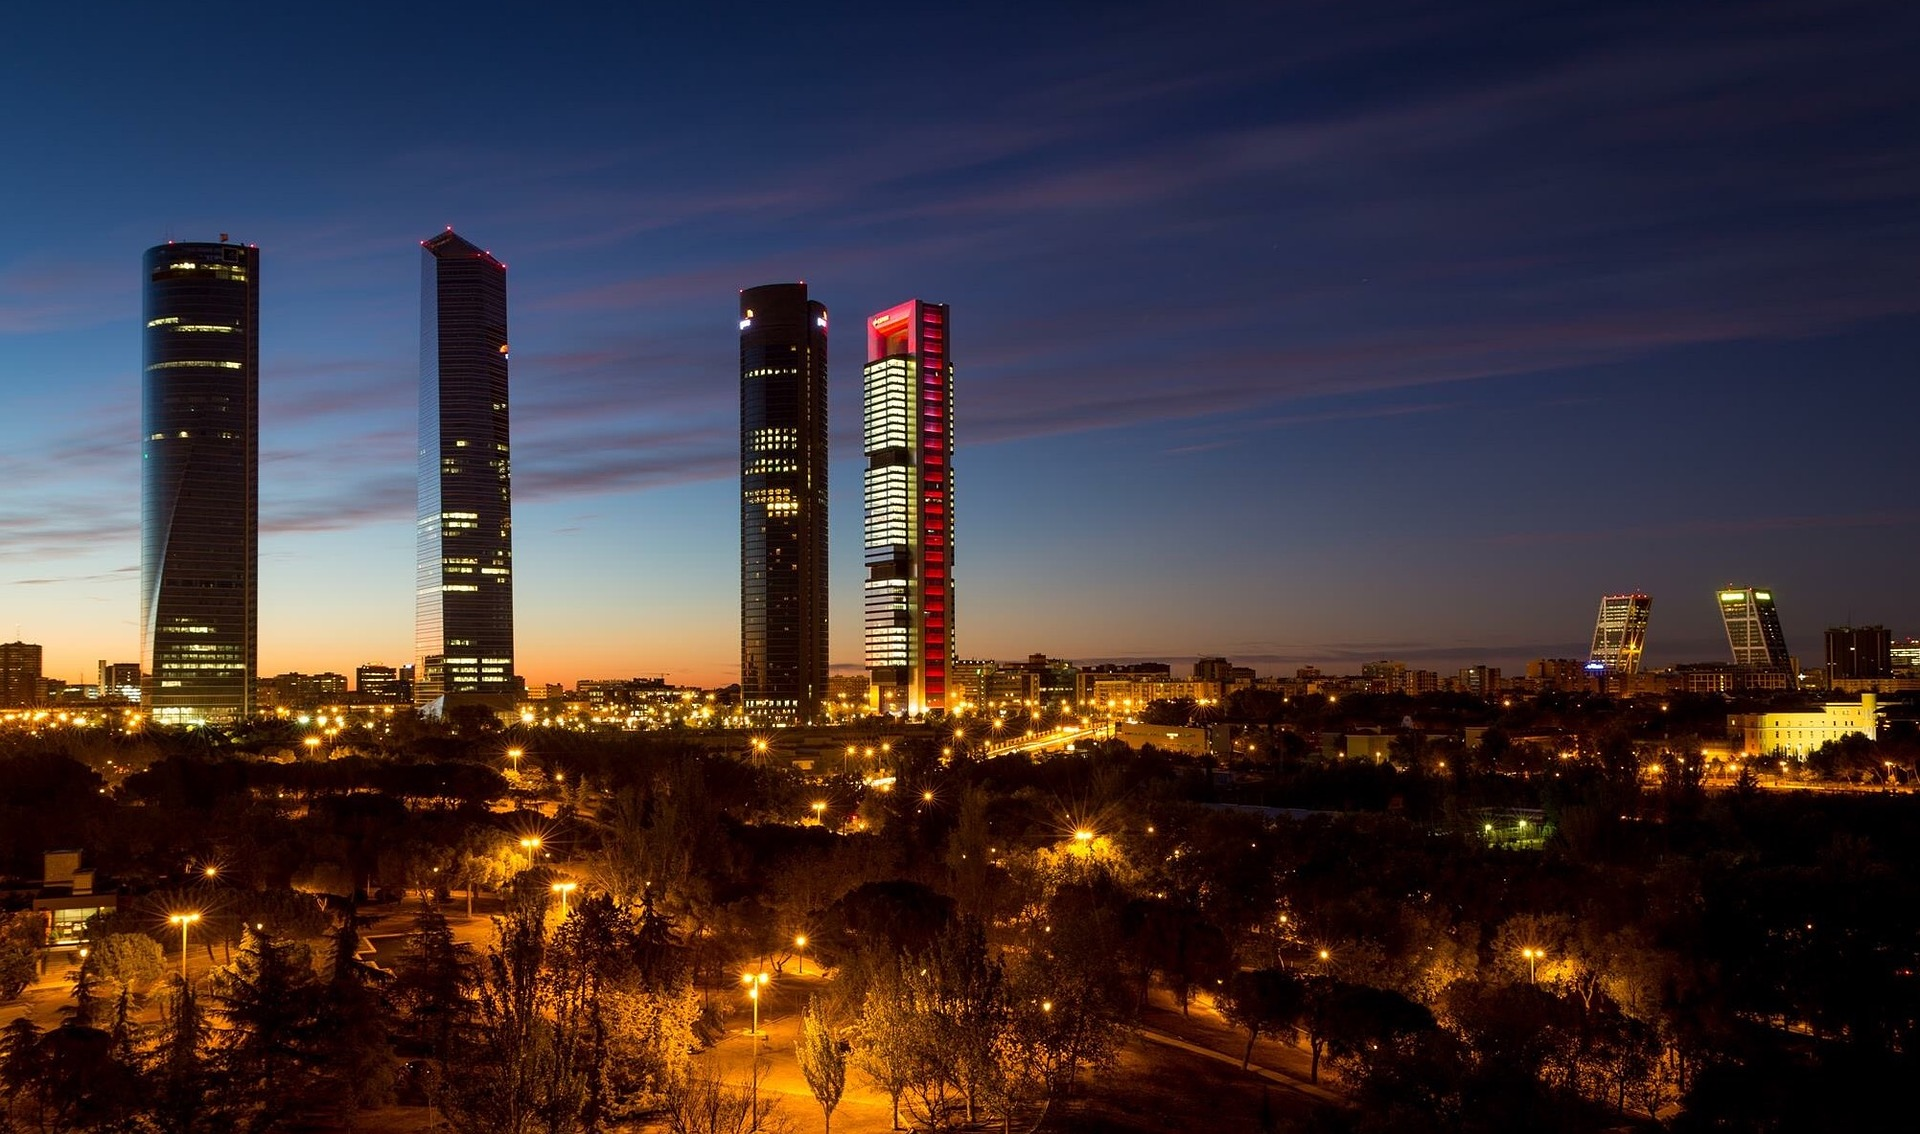 Madrid, Spain at night